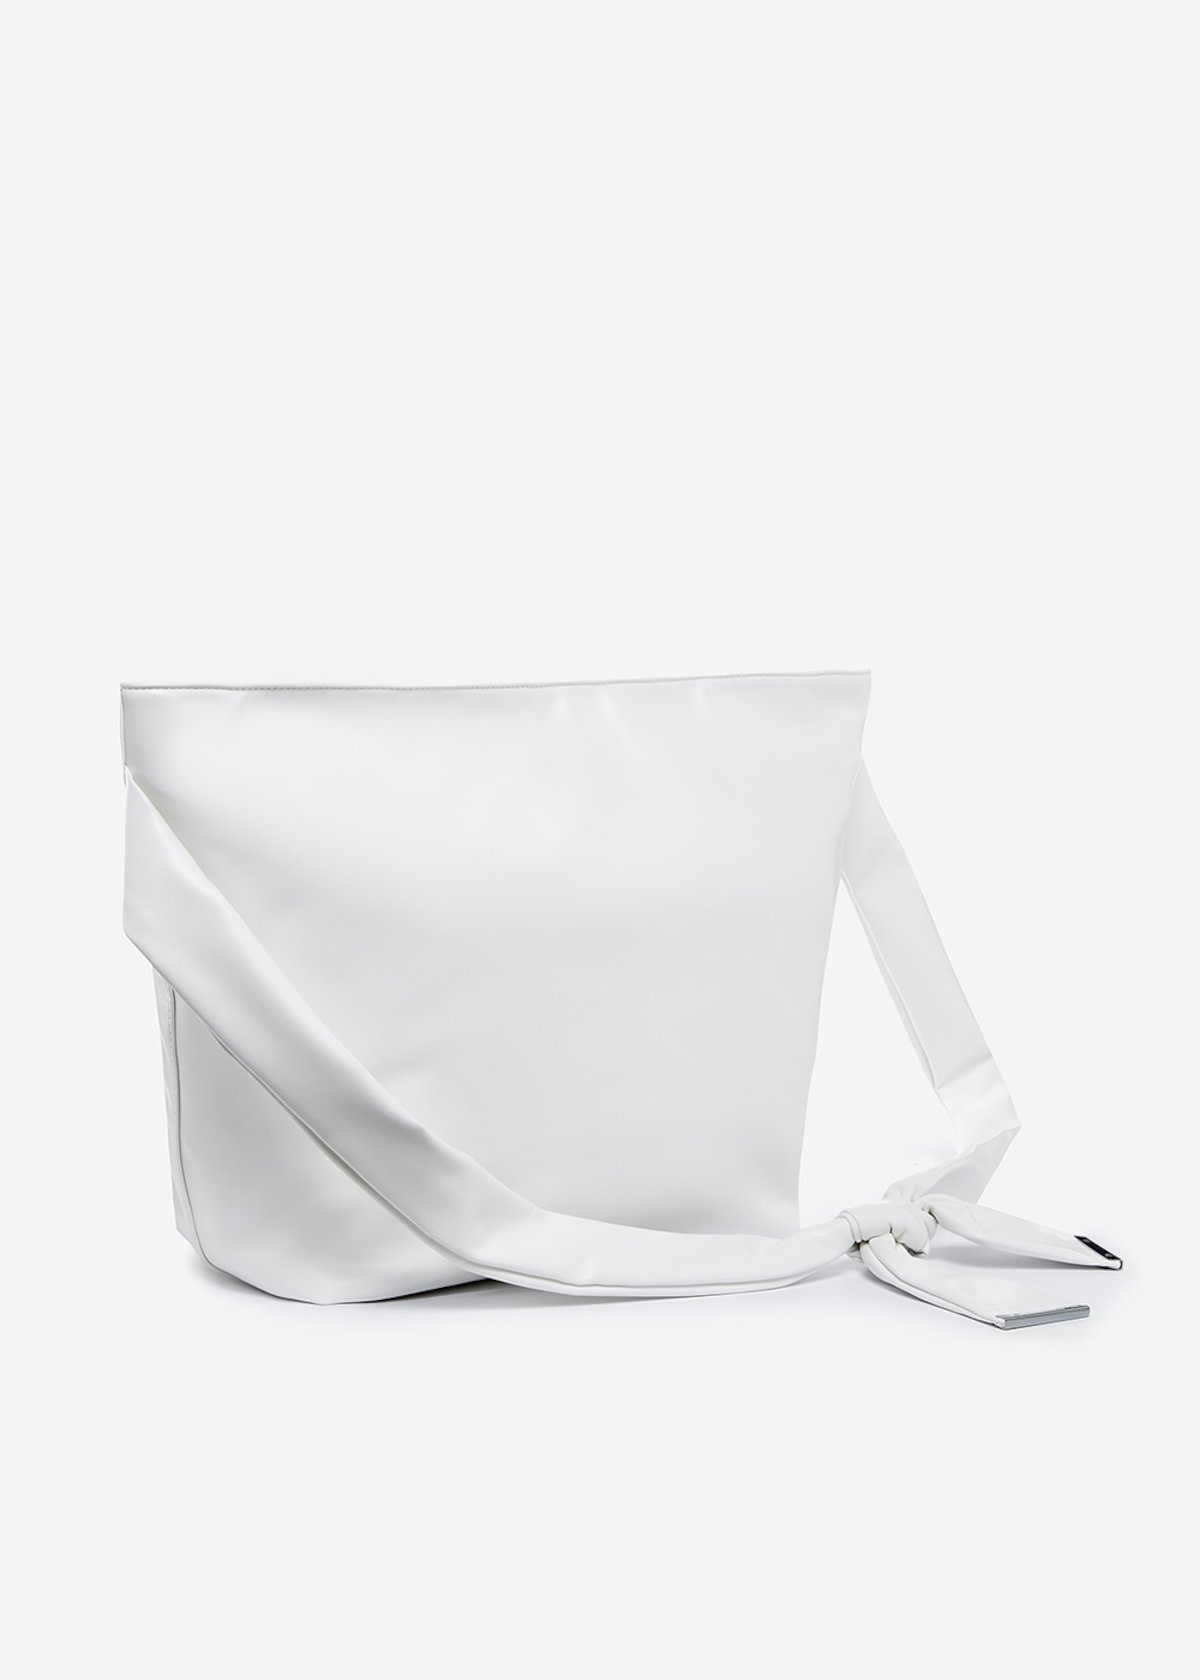 Bag Brigitte in ecopelle con manico regolabile - White